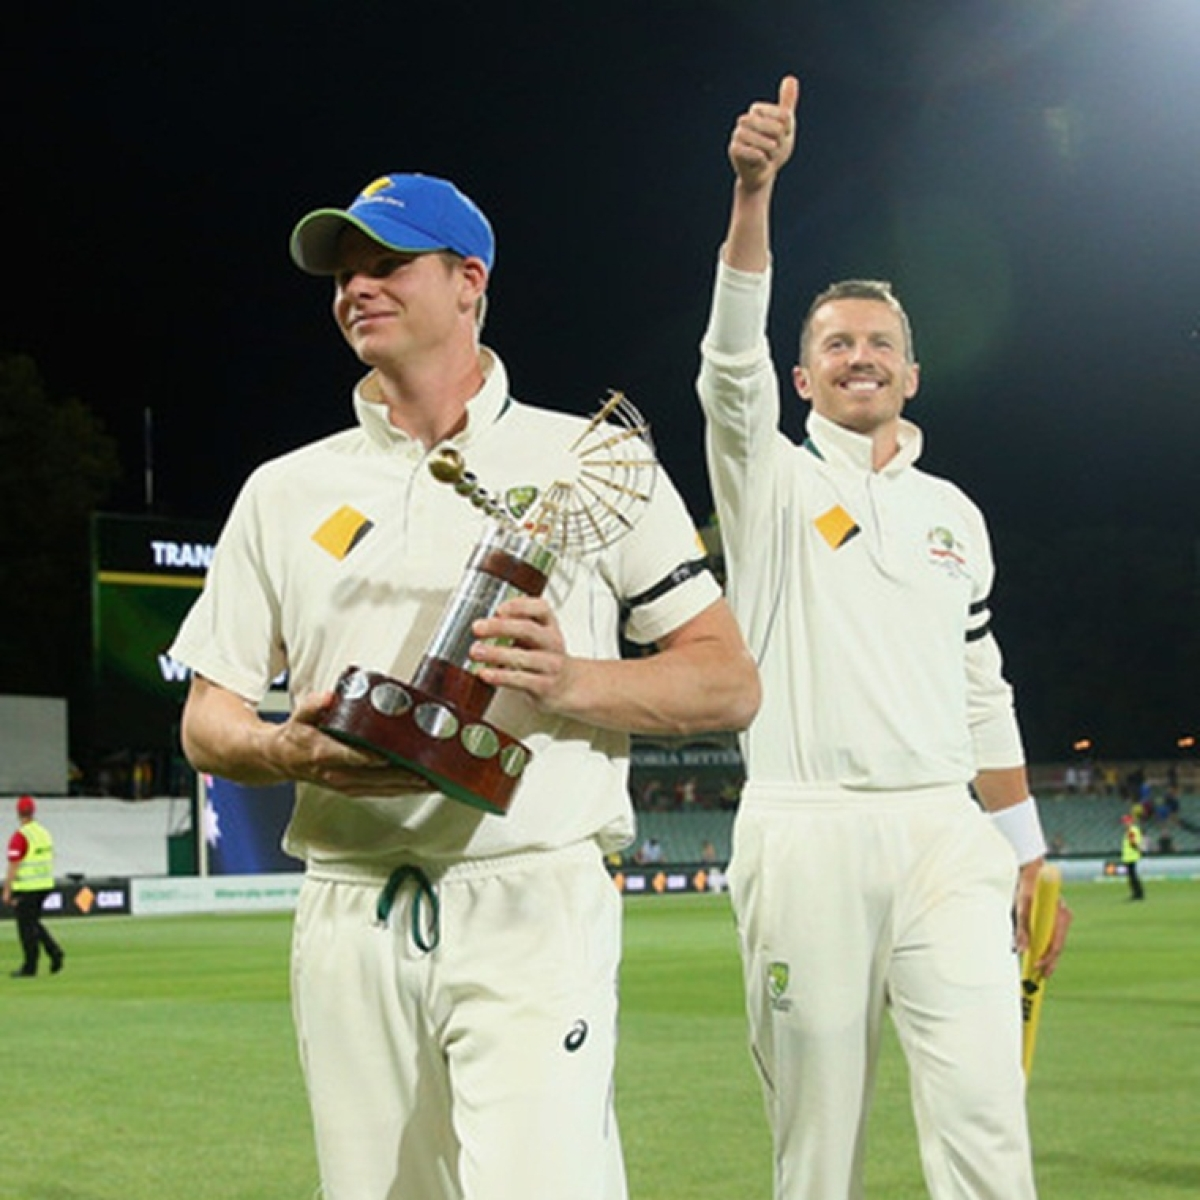 'One of the great team man': Steve Smith, David Warner congratulate Peter Siddle for outstanding career